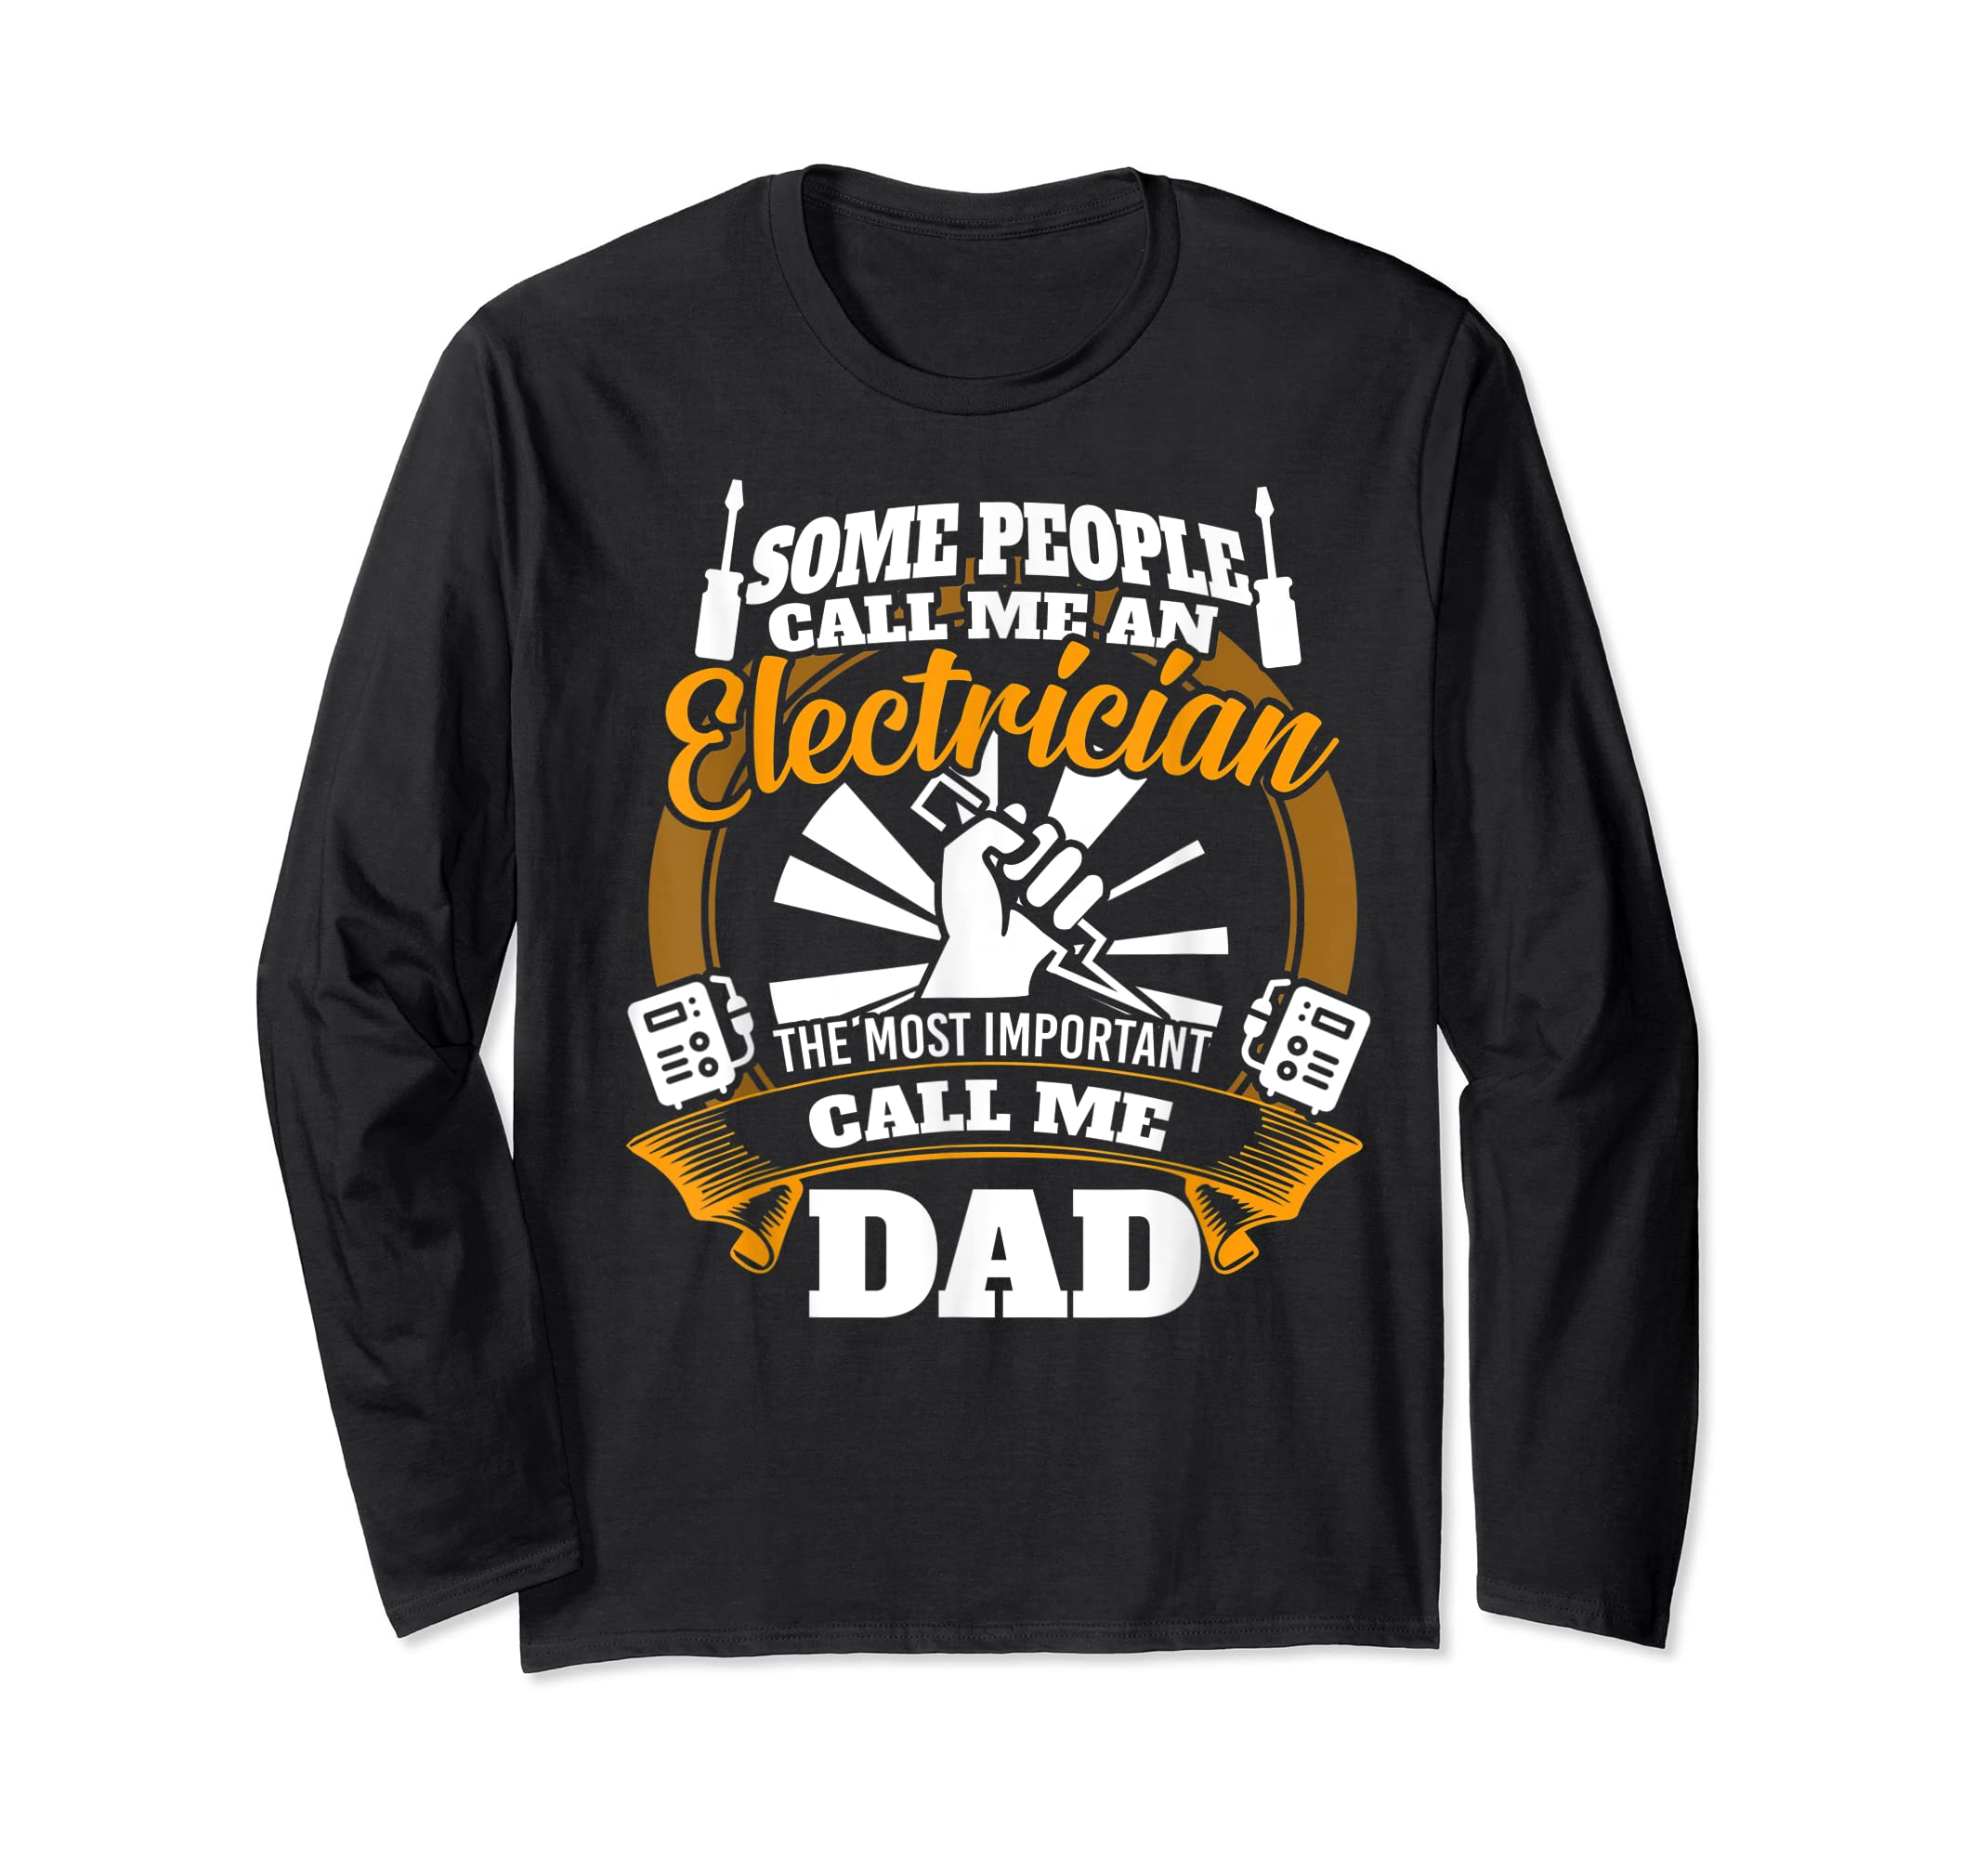 Mens Funny Electrician T-shirt for dad who loves technician gifts-Long Sleeve-Black